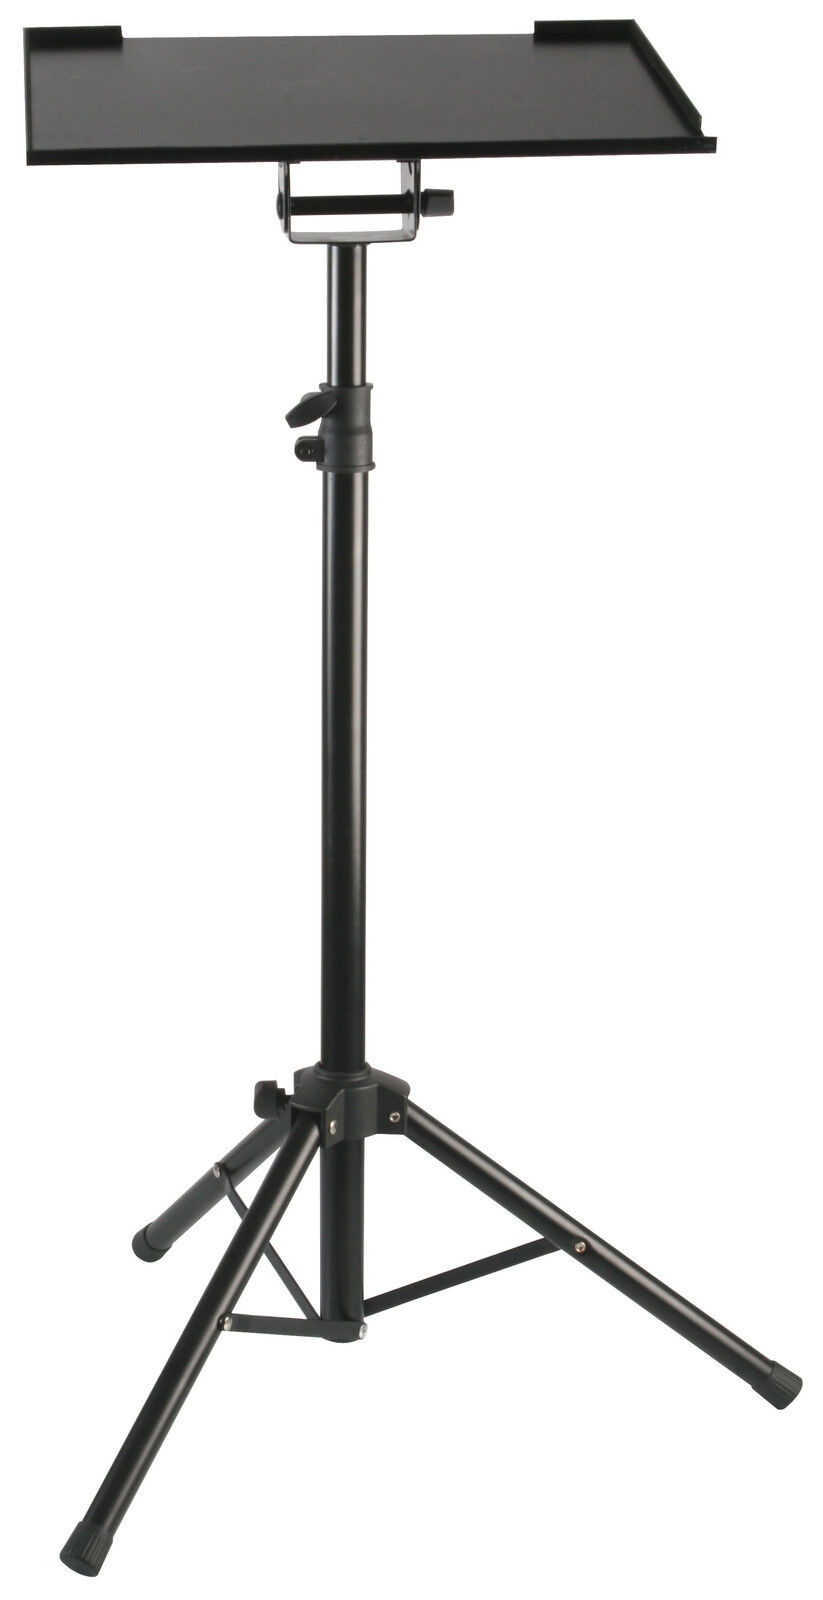 Heavy Duty Projector/Laptop Stand for DJ DISCO KAROKE CONFERENCE ROOM HOTEL BAR